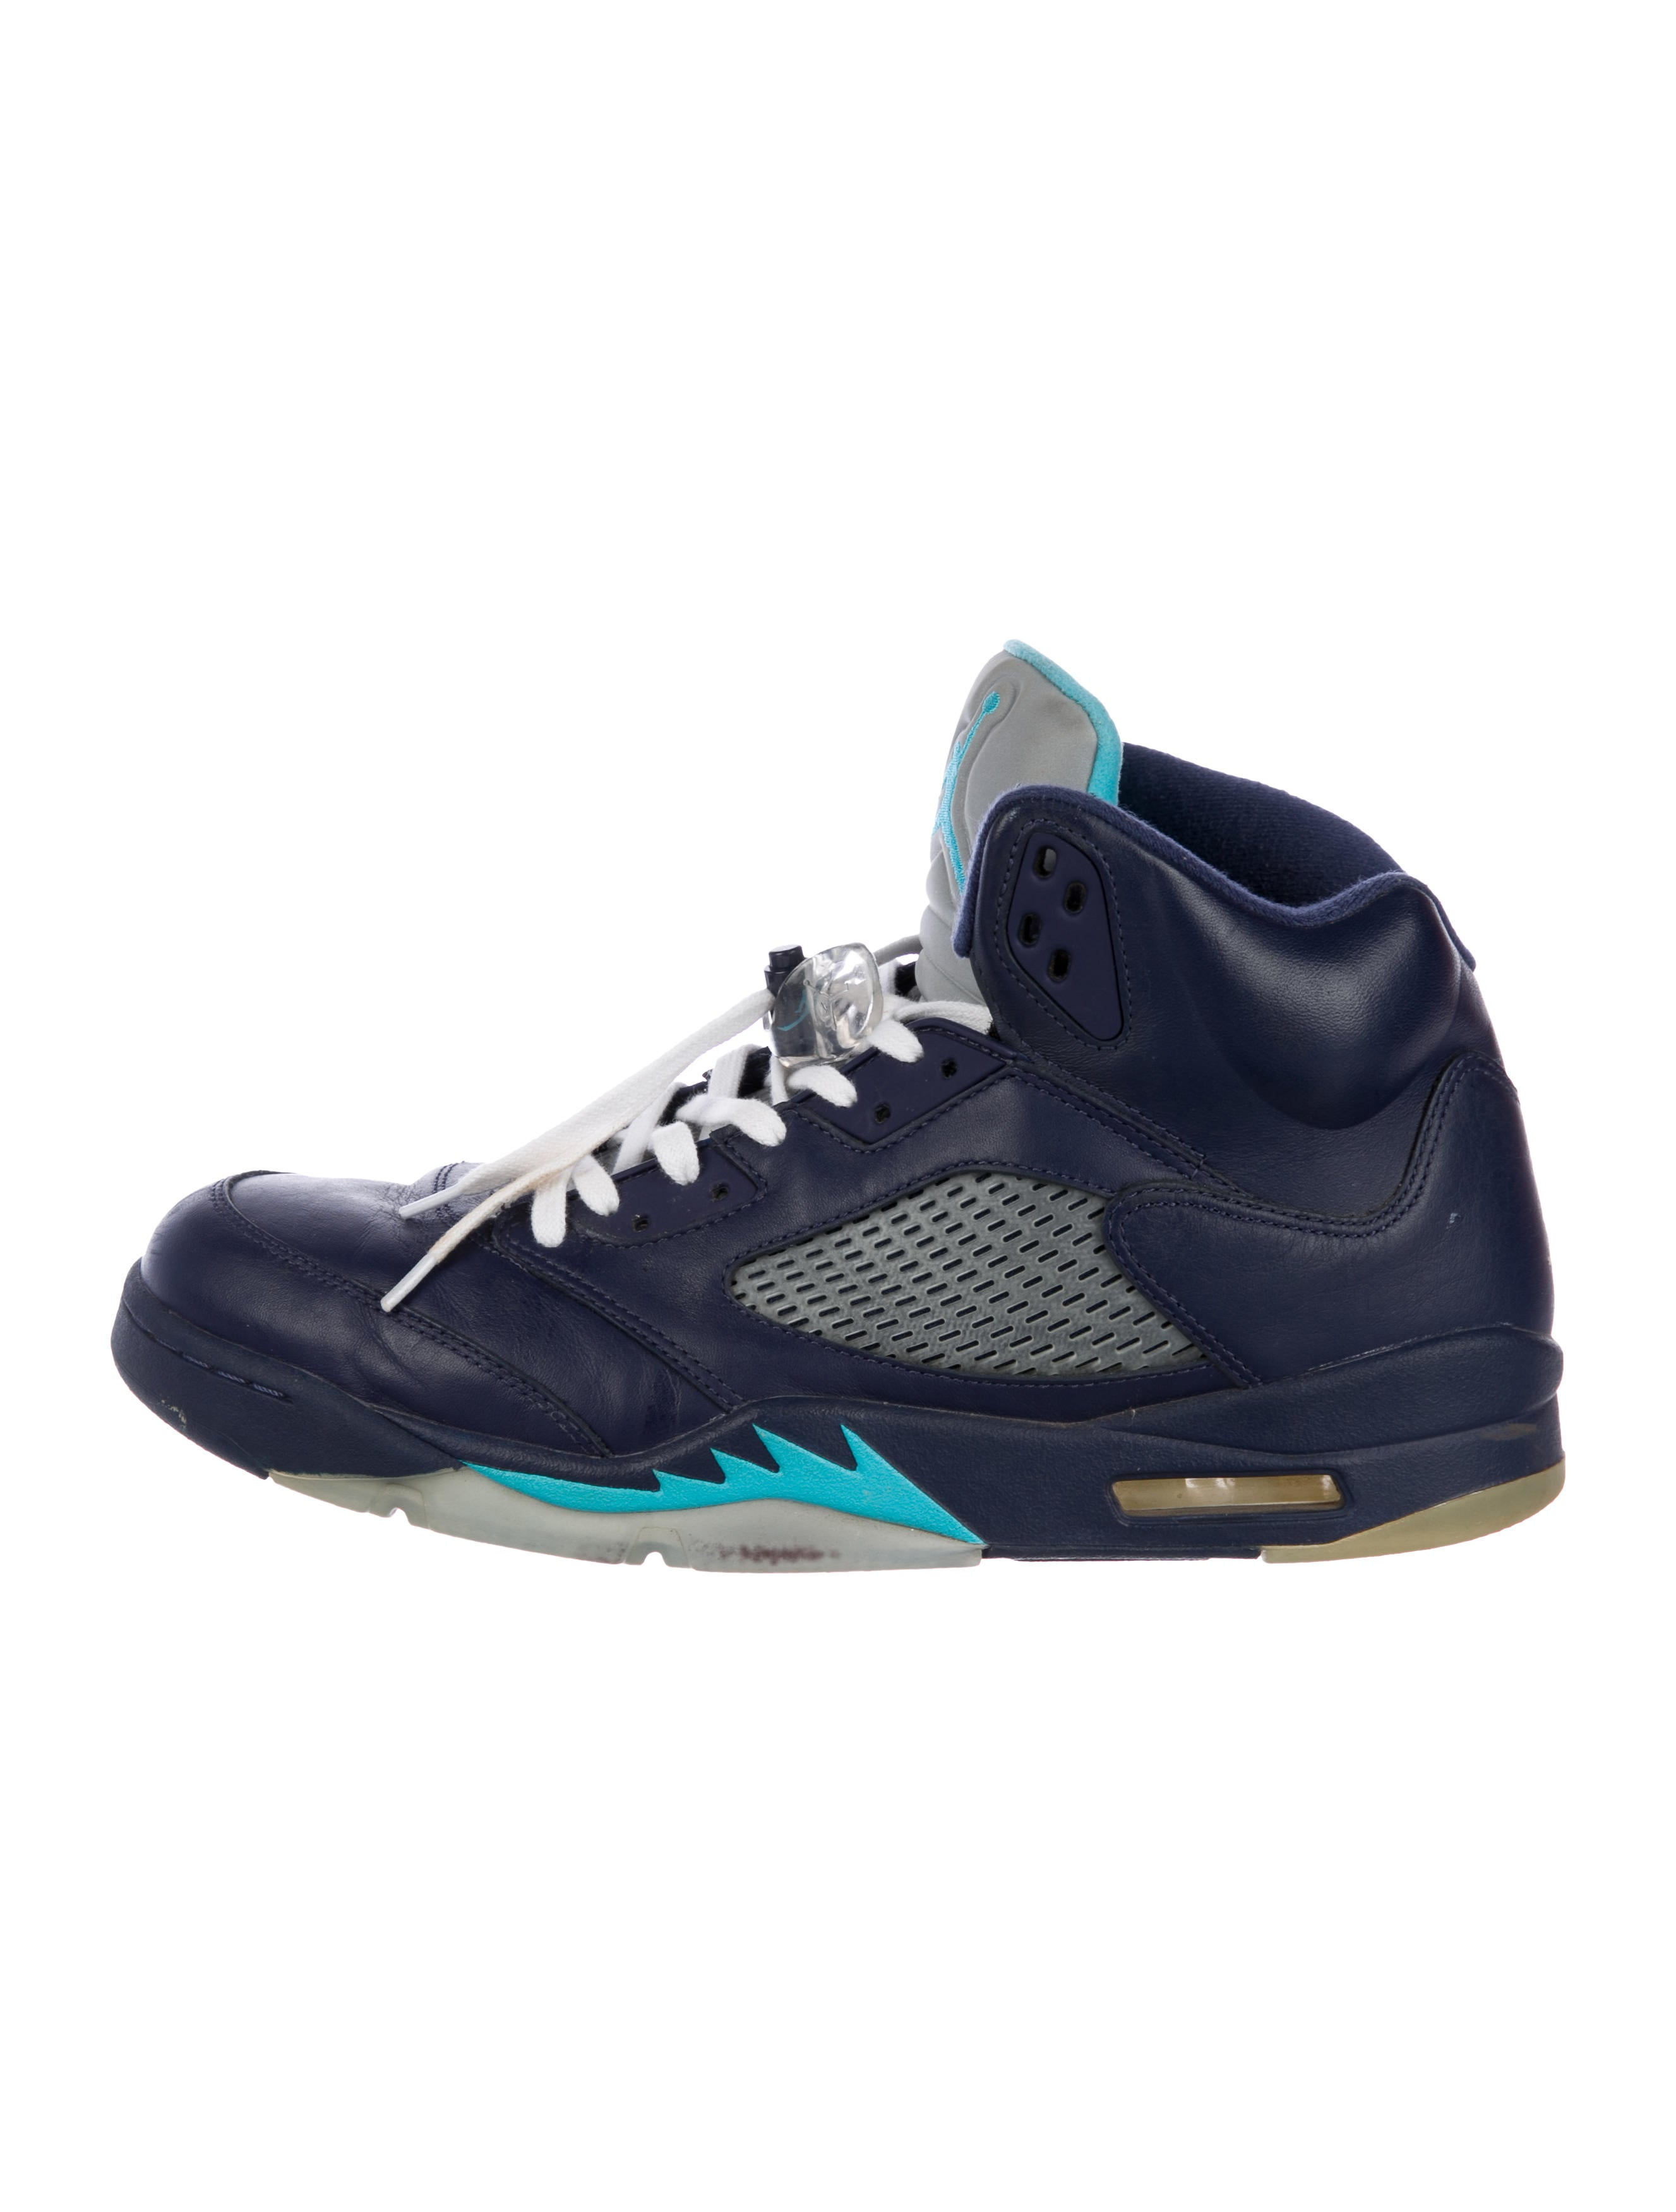 check out d8b52 002c2 5 Retro Hornets Sneakers